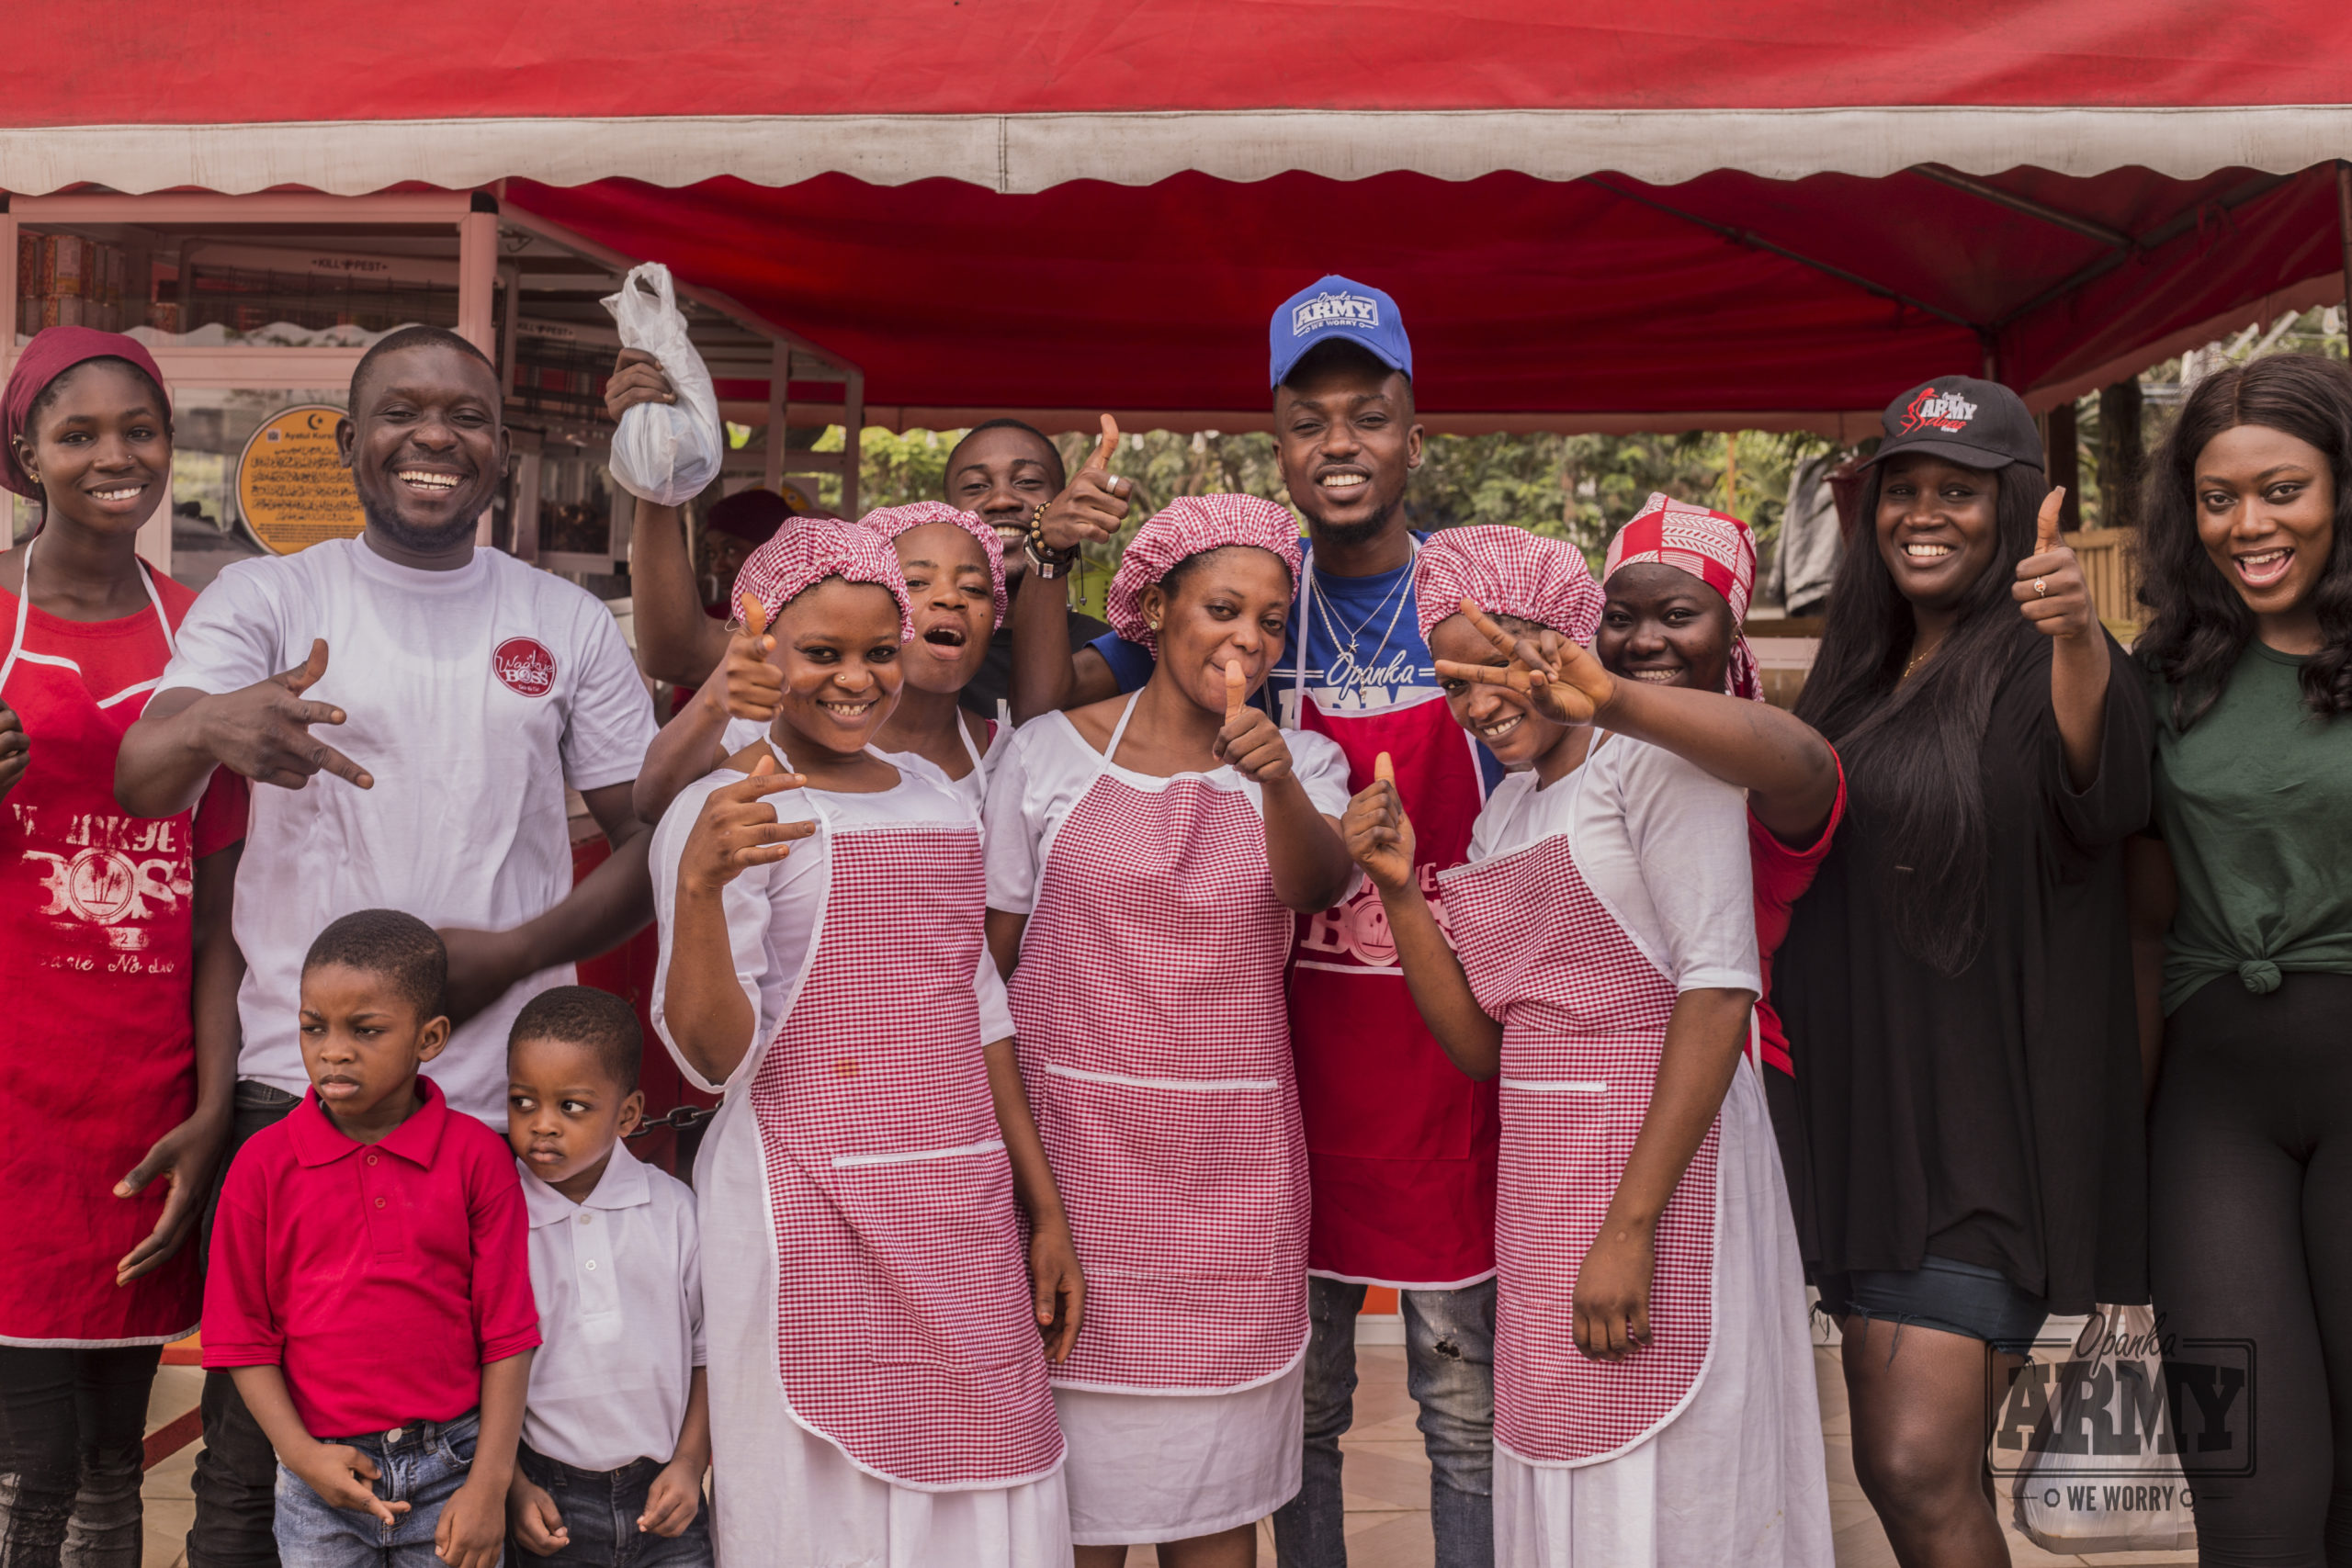 Opanka Serves Free Food On Ghana Independence Day